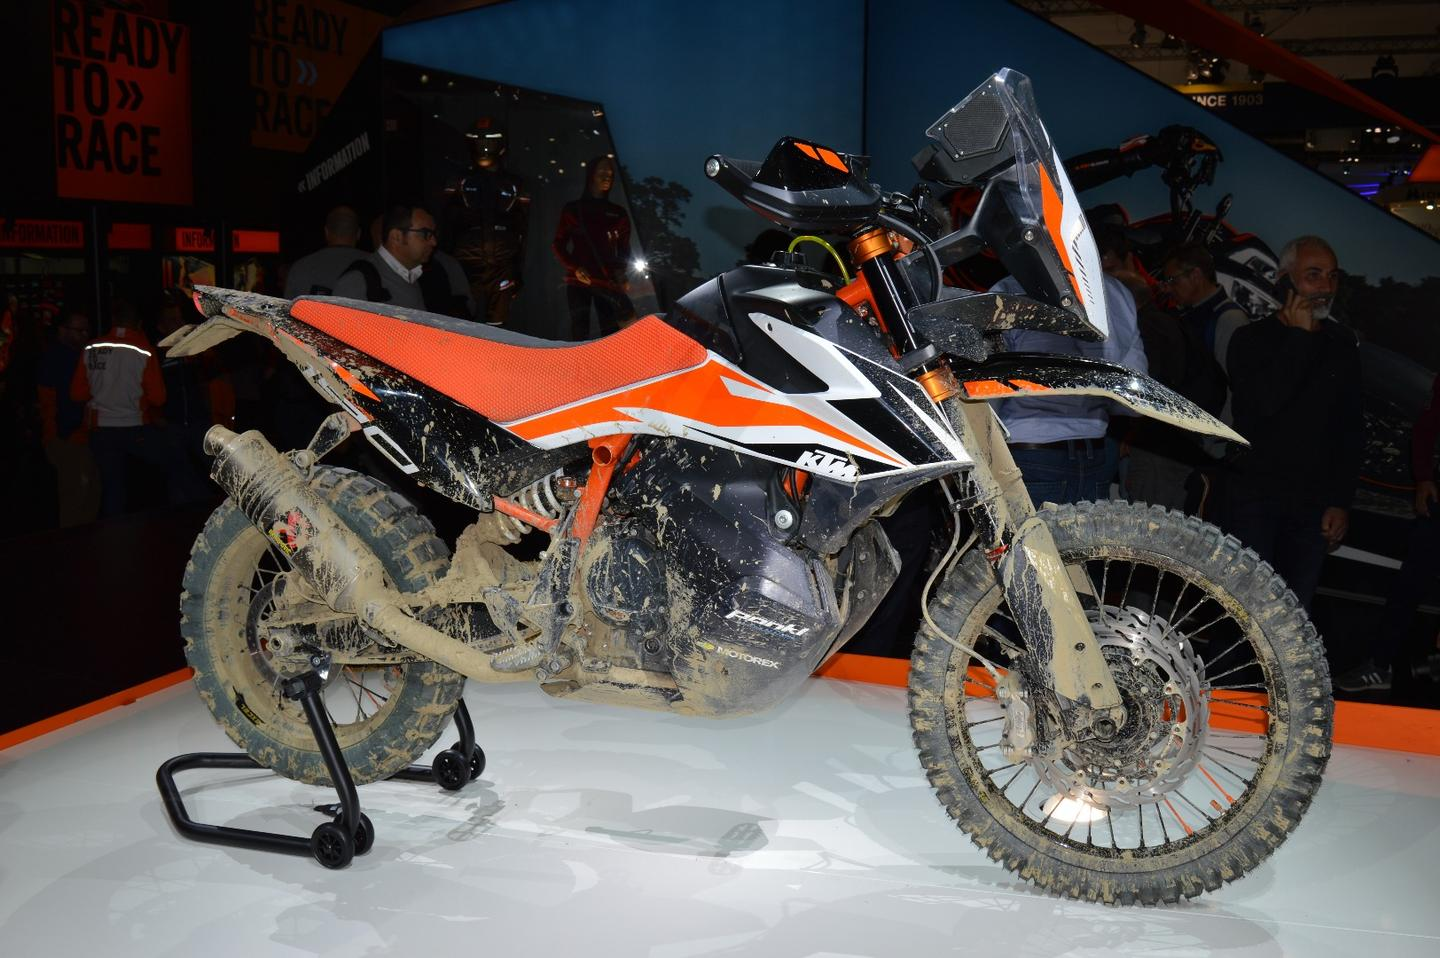 """The 790 Adventure R prototype at EICMA 2017appropriately finished in a """"rally-style"""" paint job"""